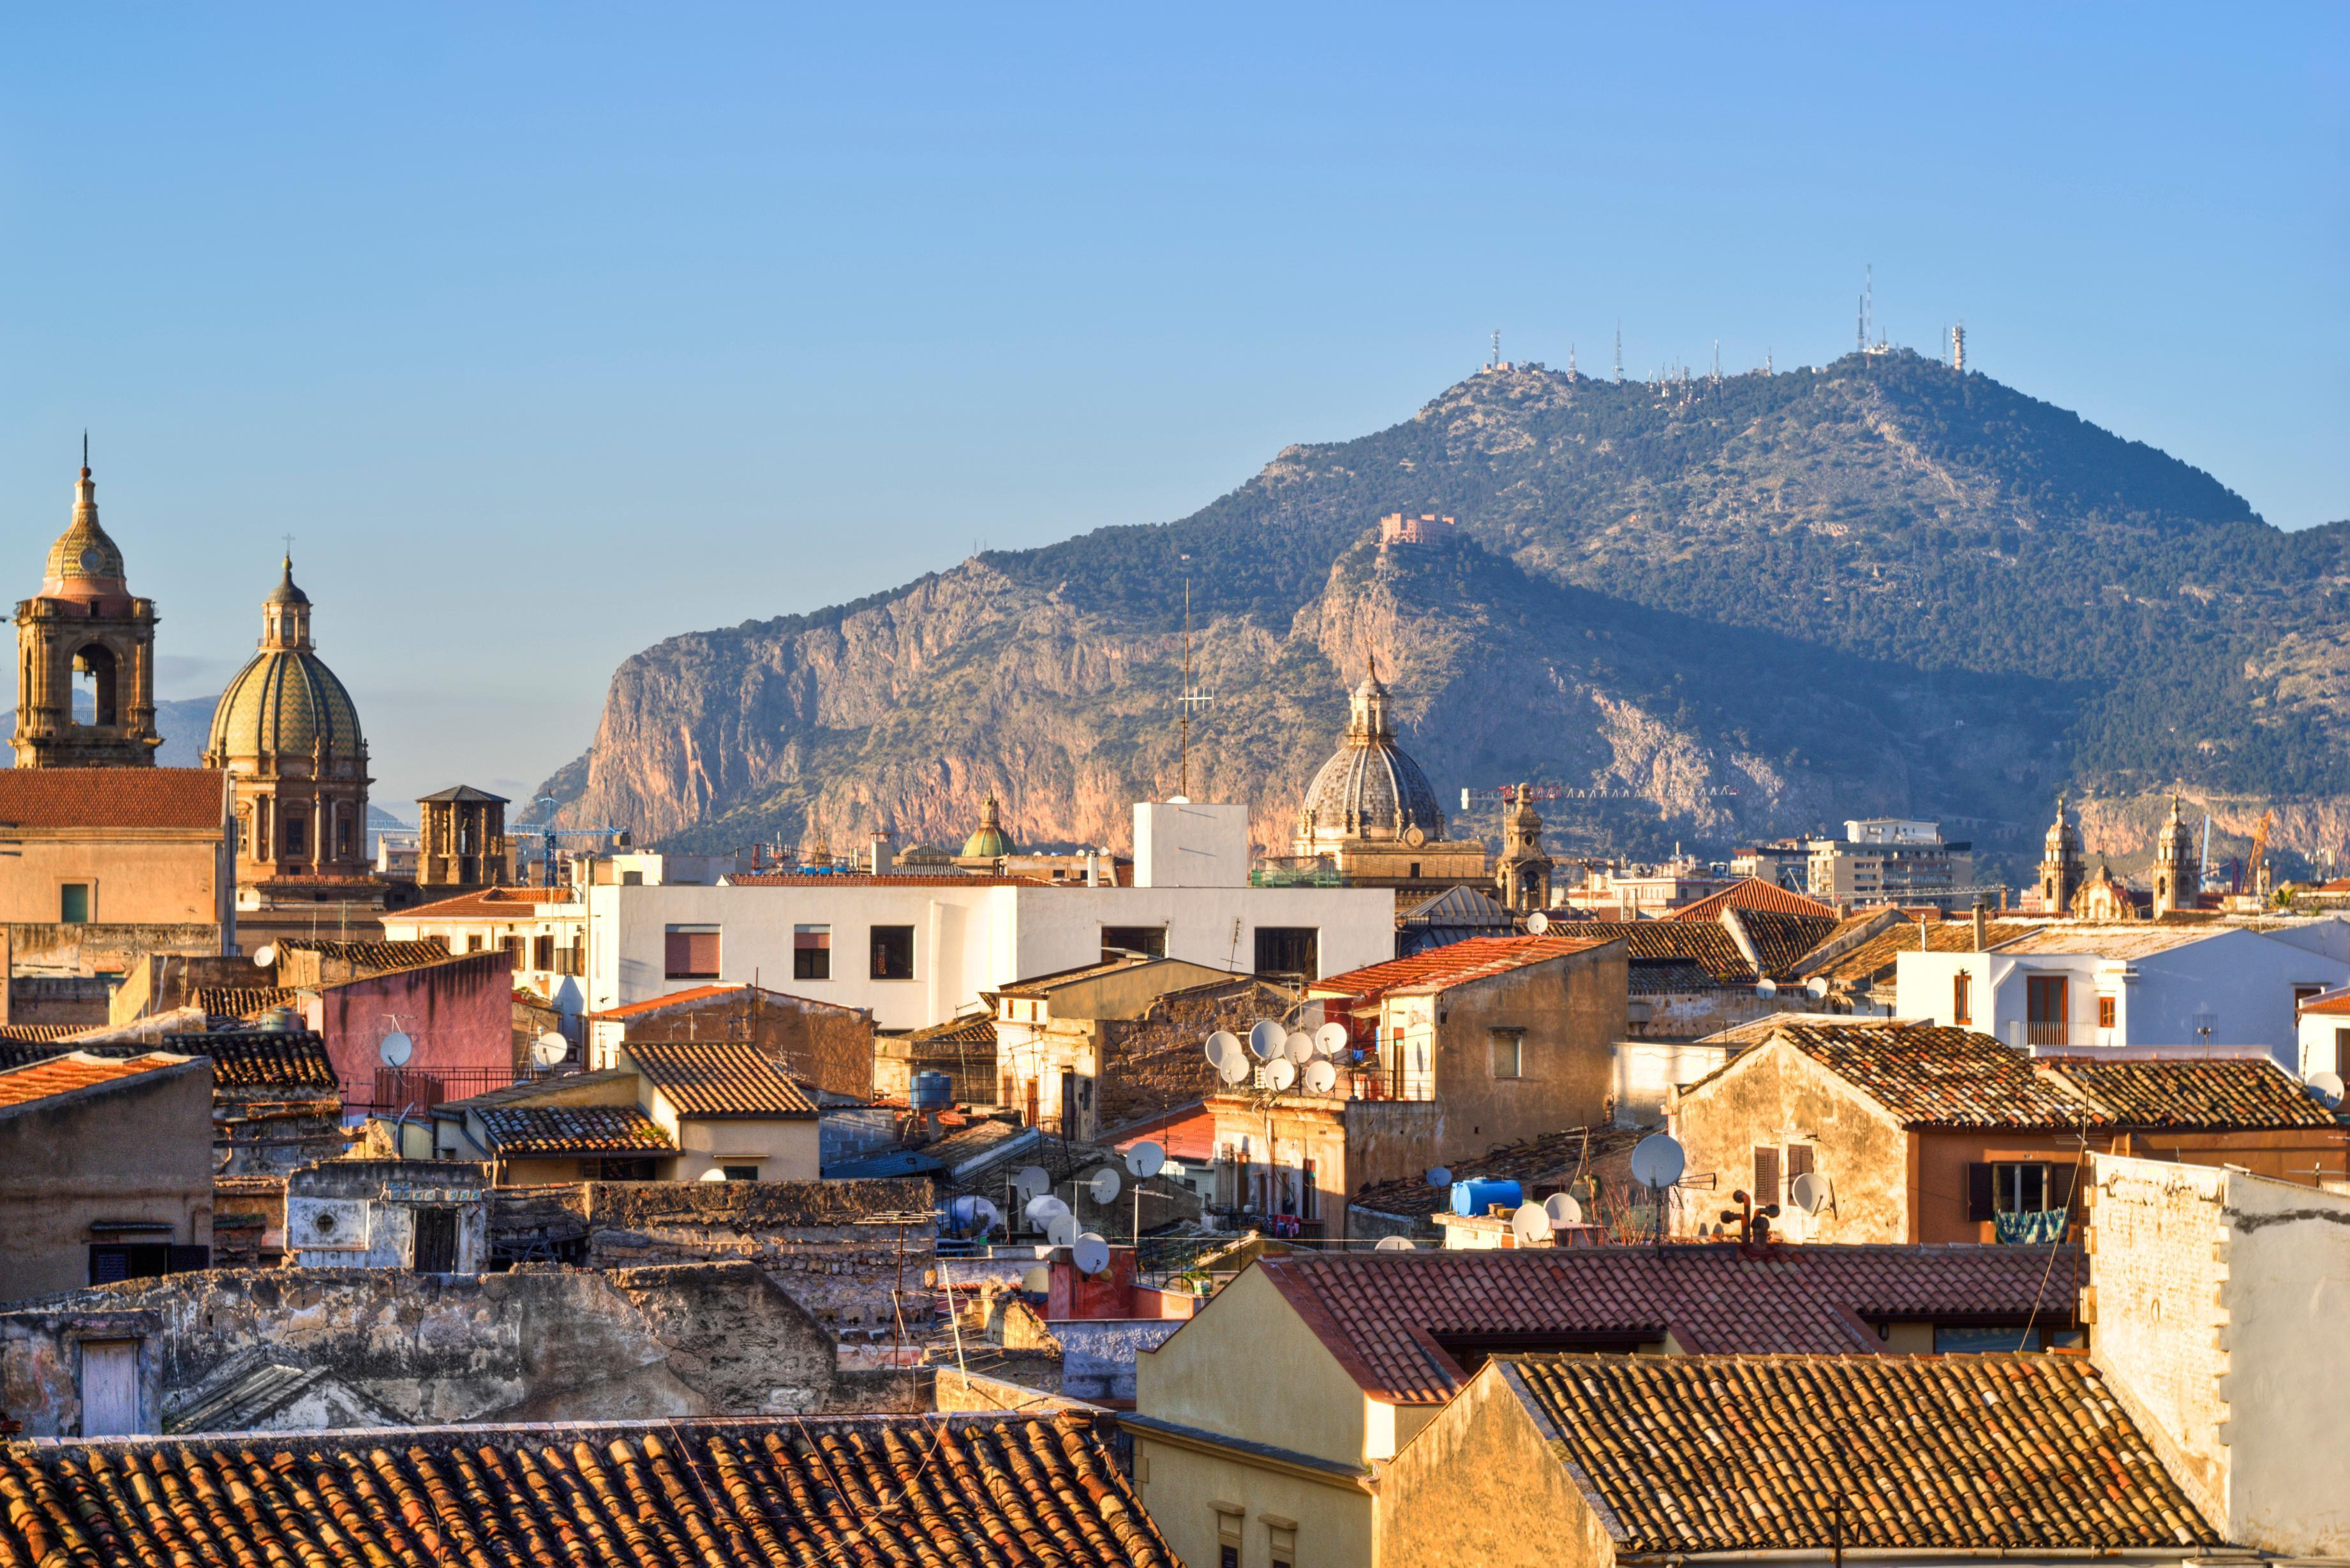 How to Spend 3 Days in Palermo